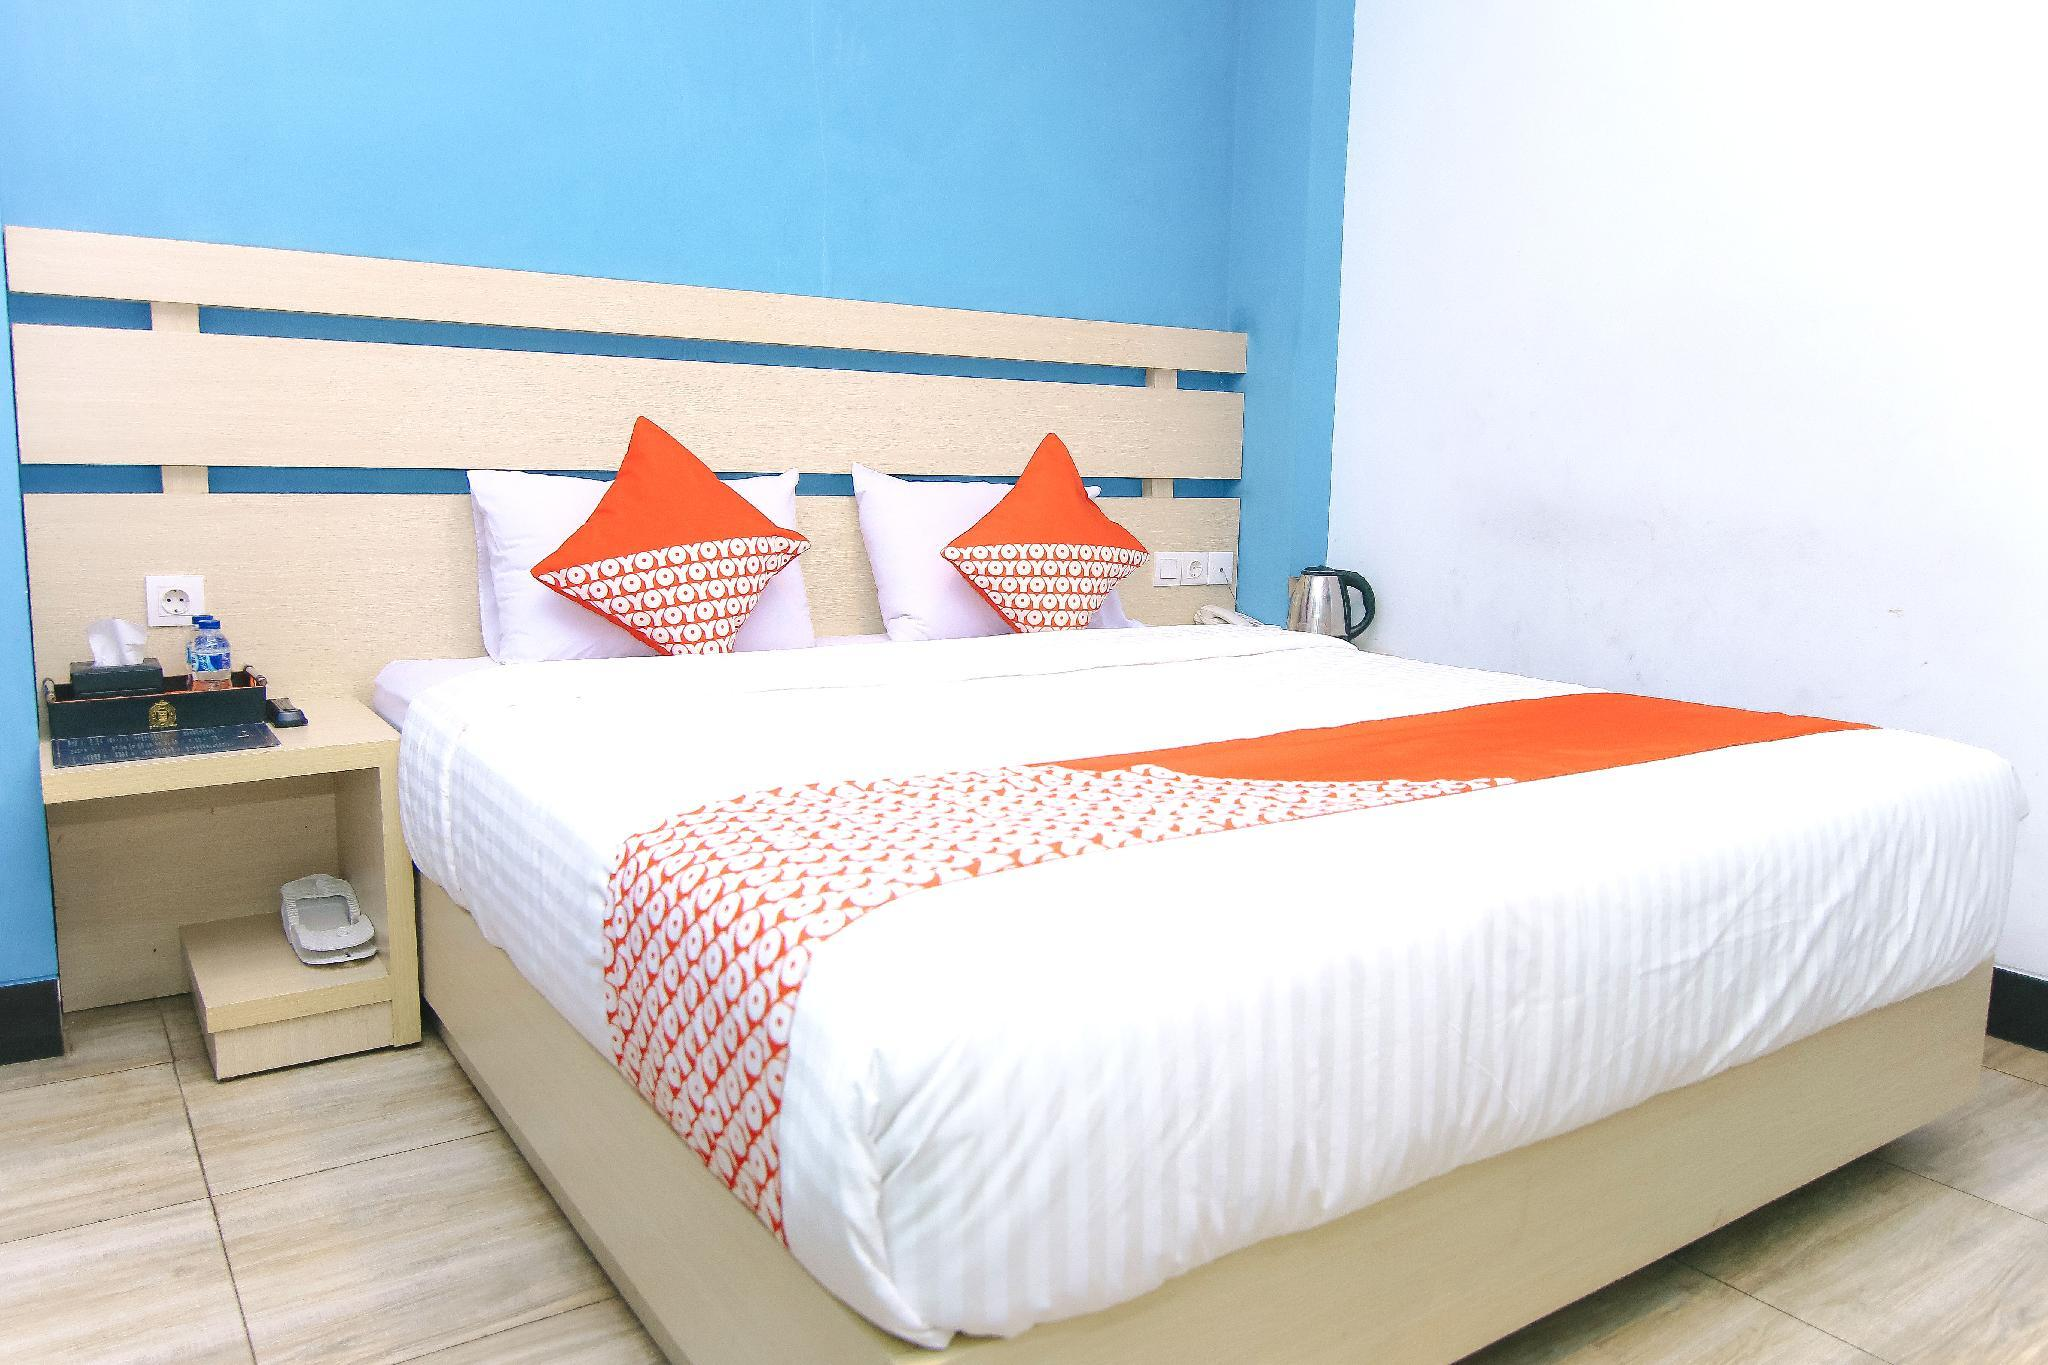 OYO 525 Budget Hotel by the Harbour